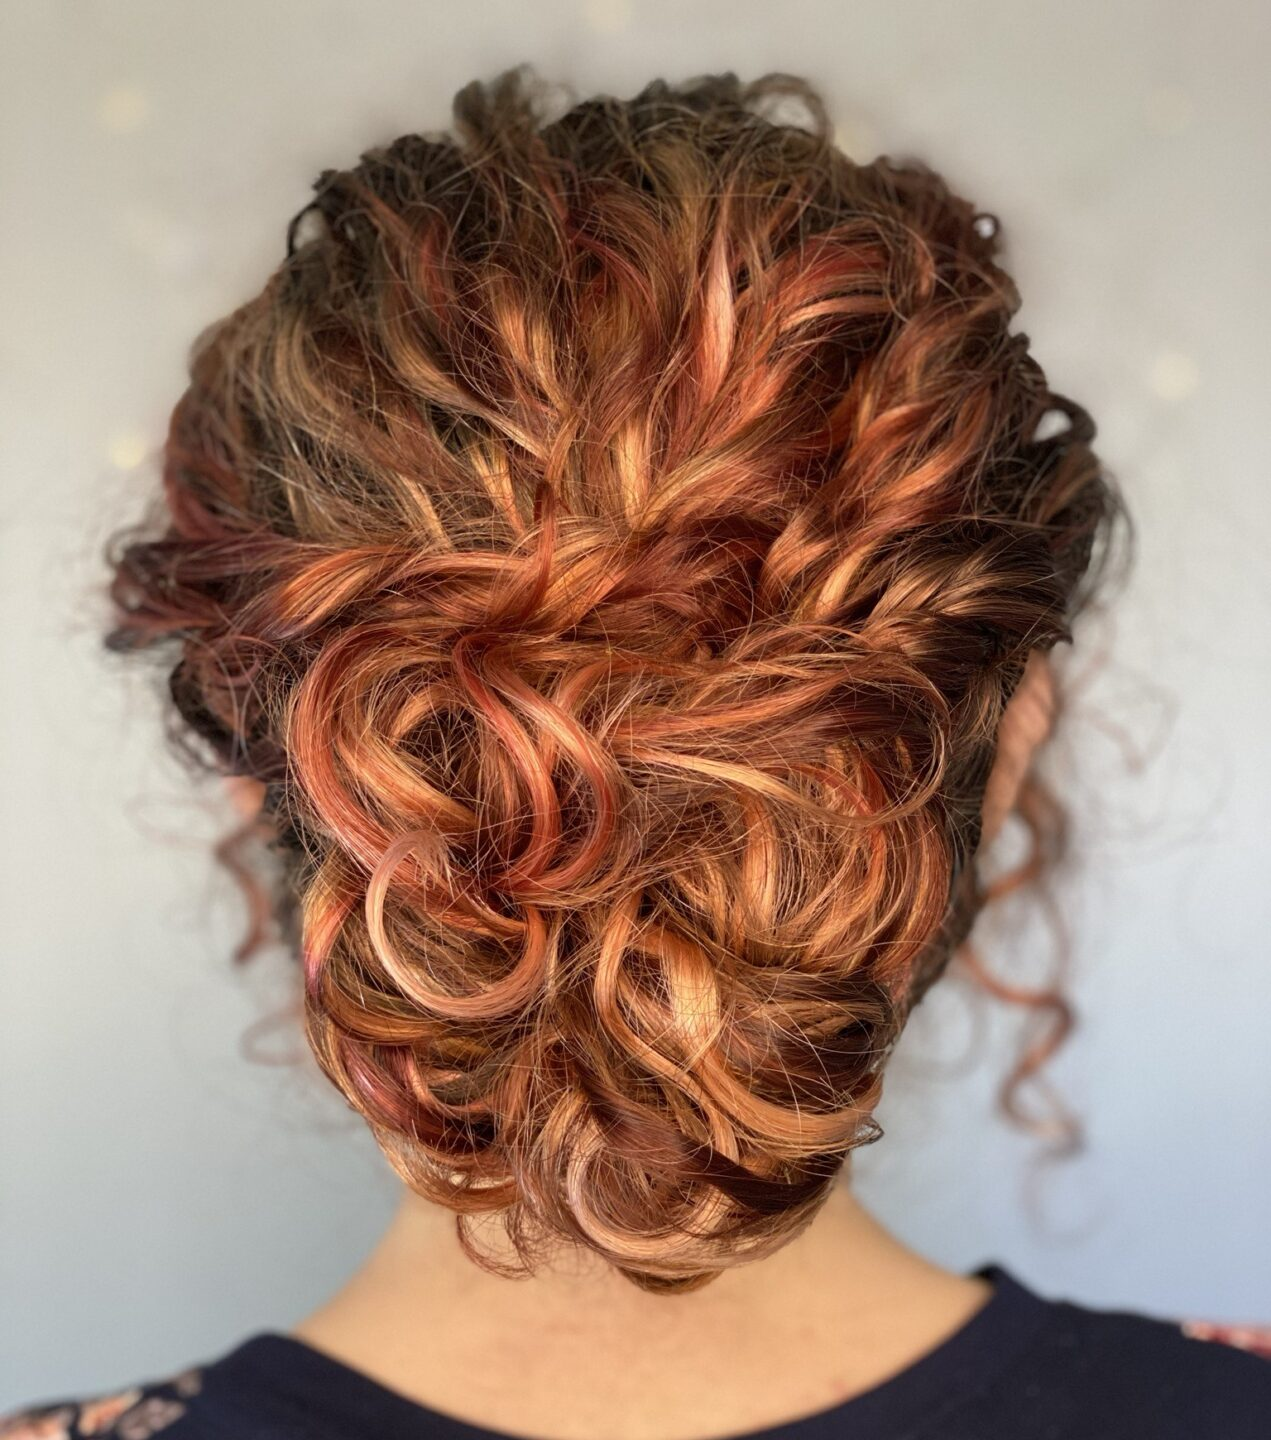 curly hair up-do by Curl Guru Shenara De Silva